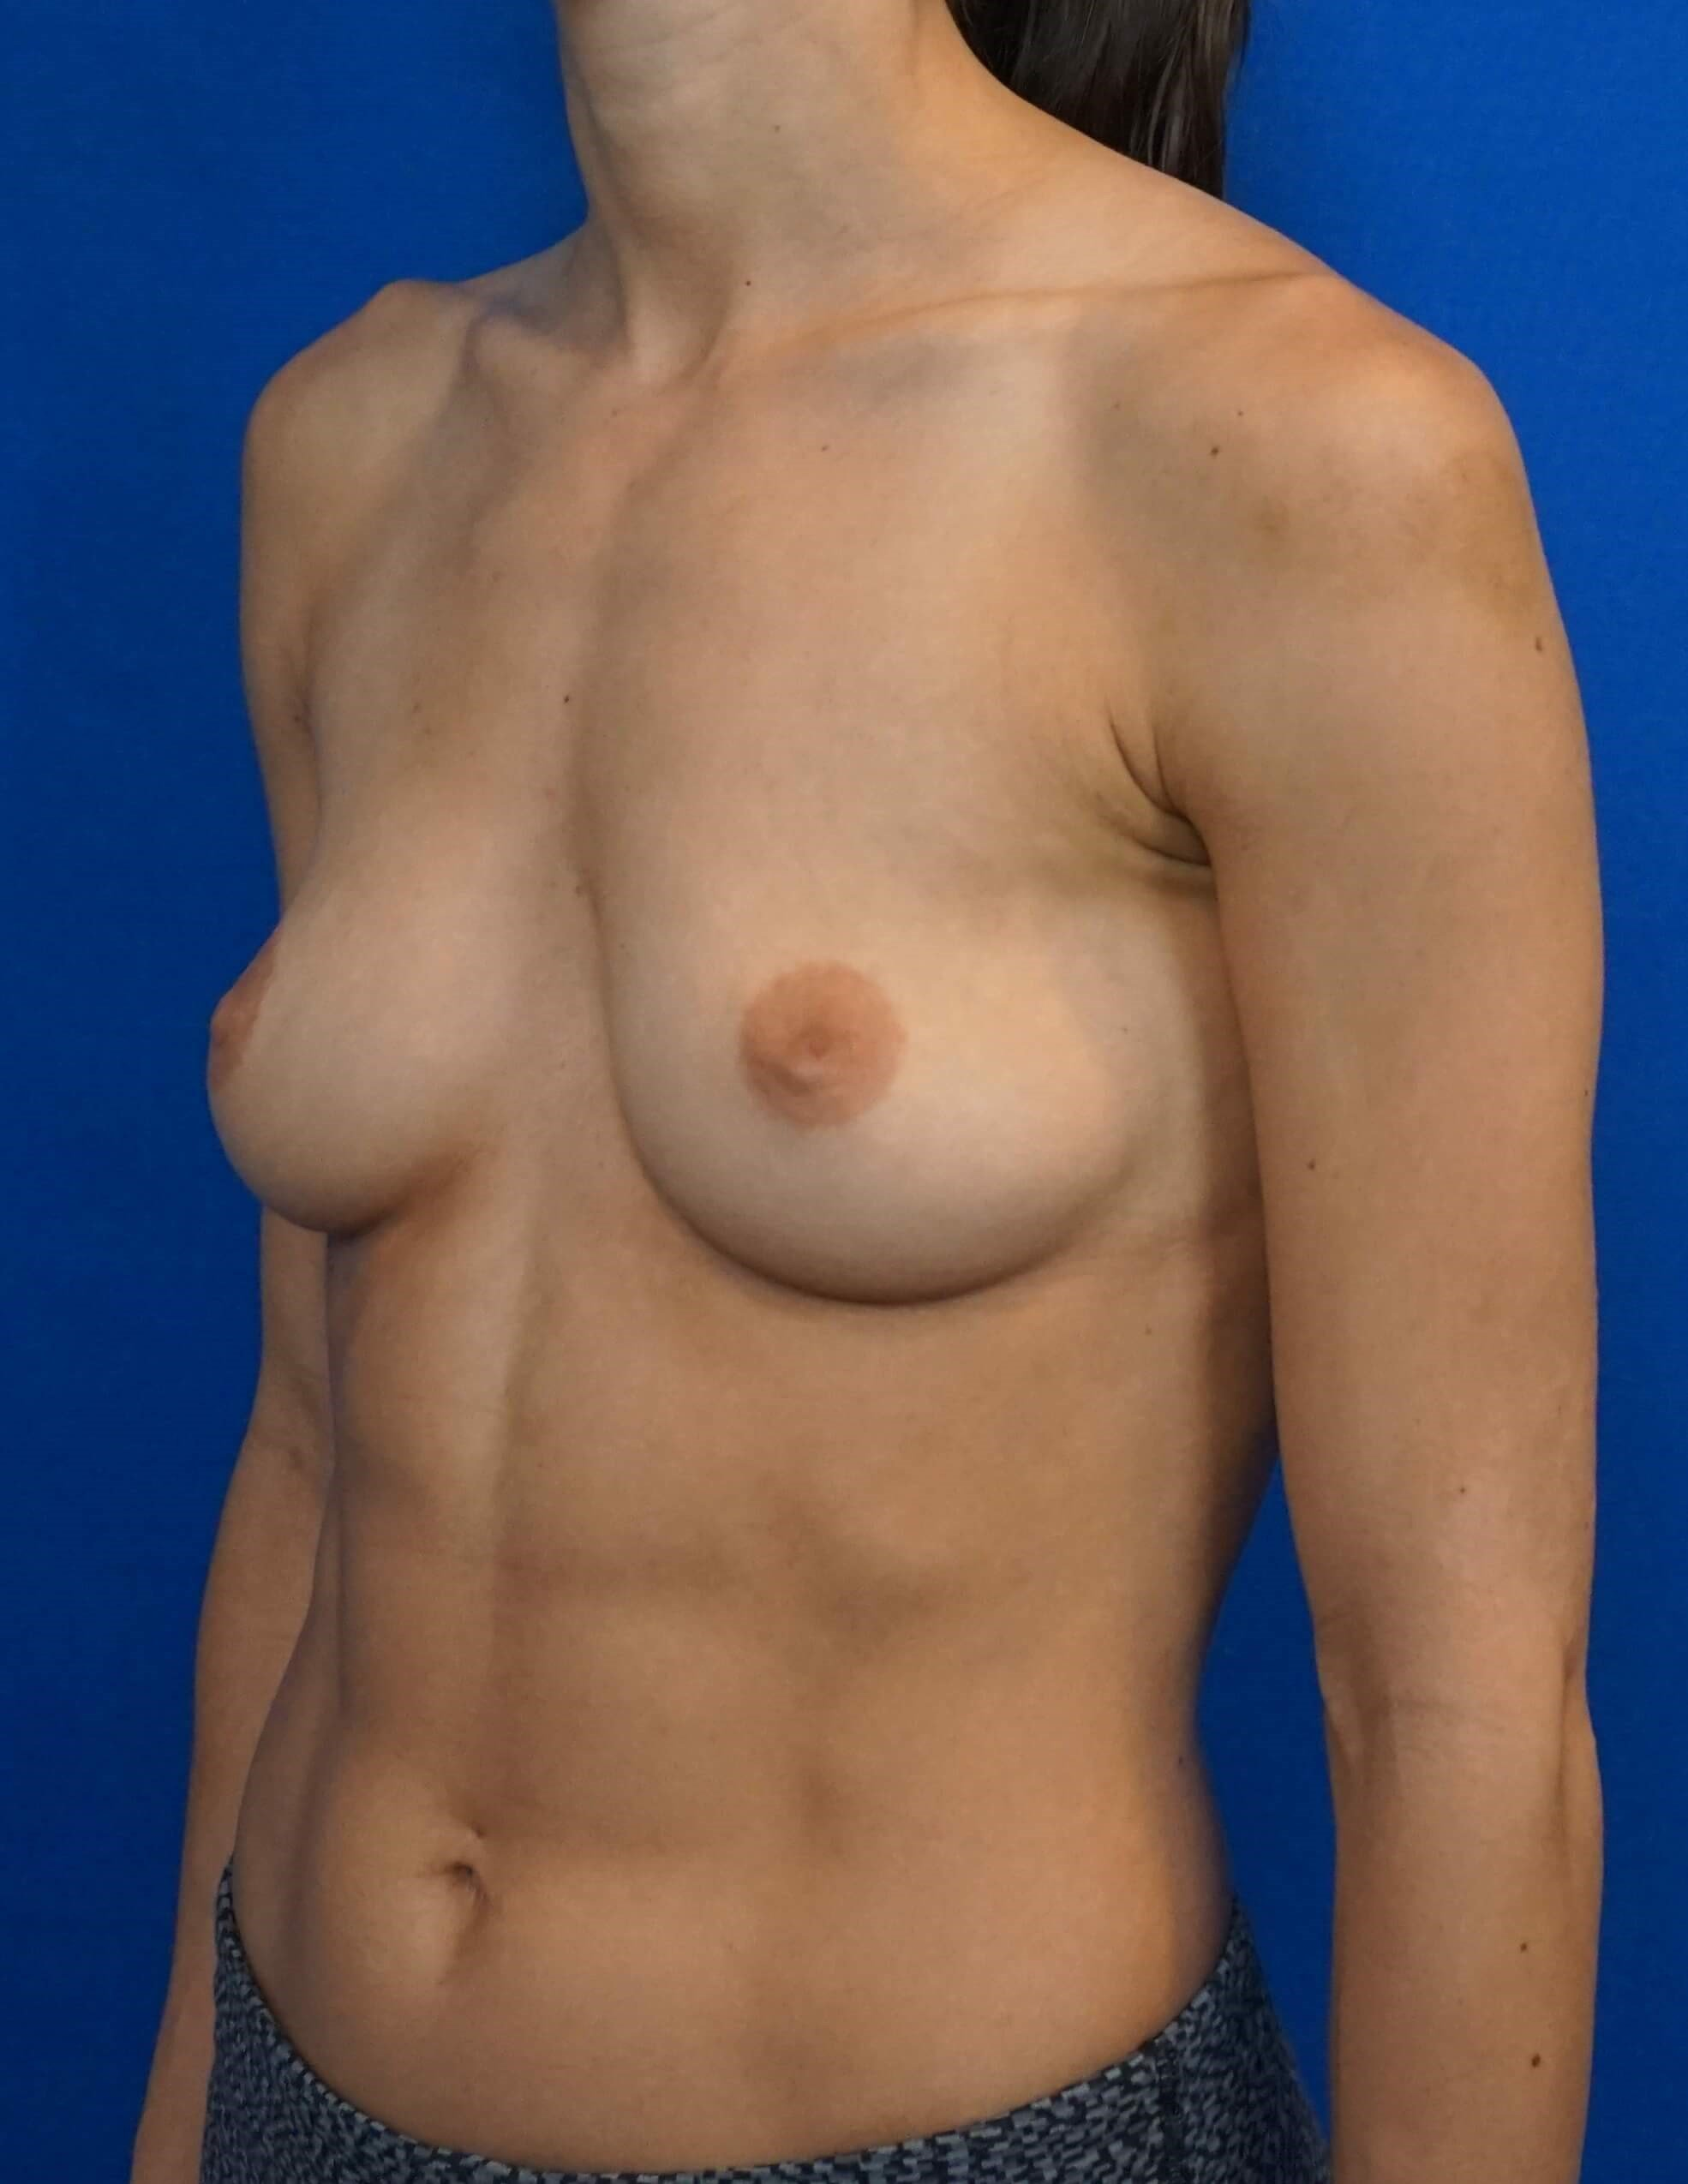 Breast Implants Surgery Pics Before